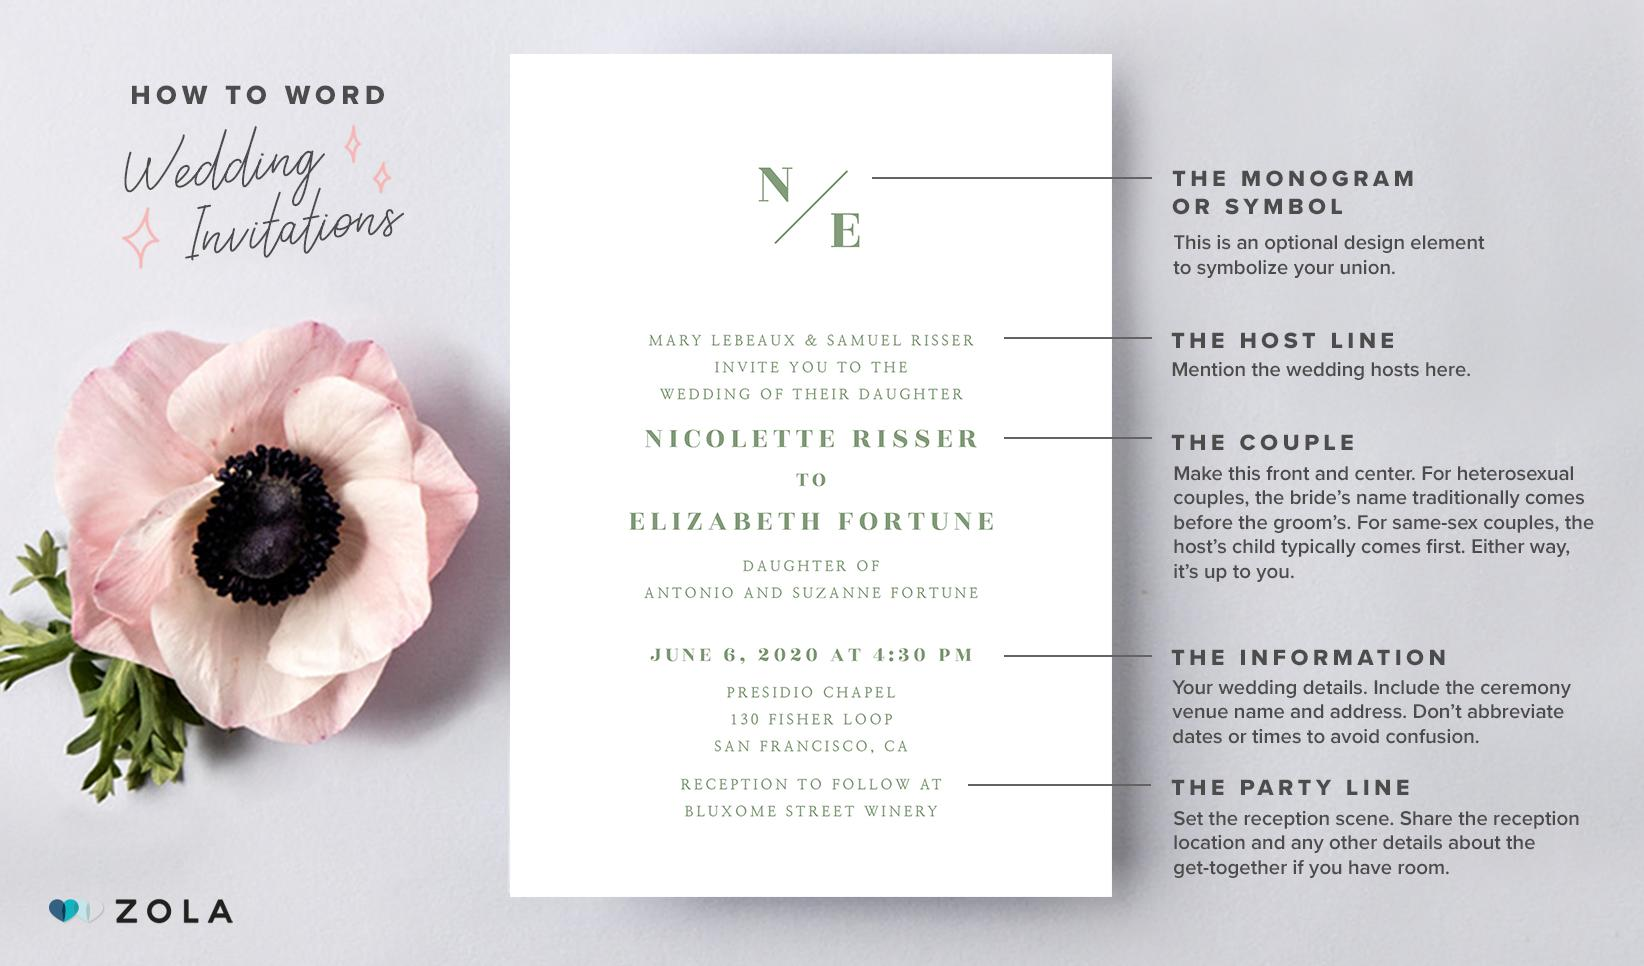 Wording For Wedding Invitations.How To Word Wedding Invitations Zola Expert Wedding Advice